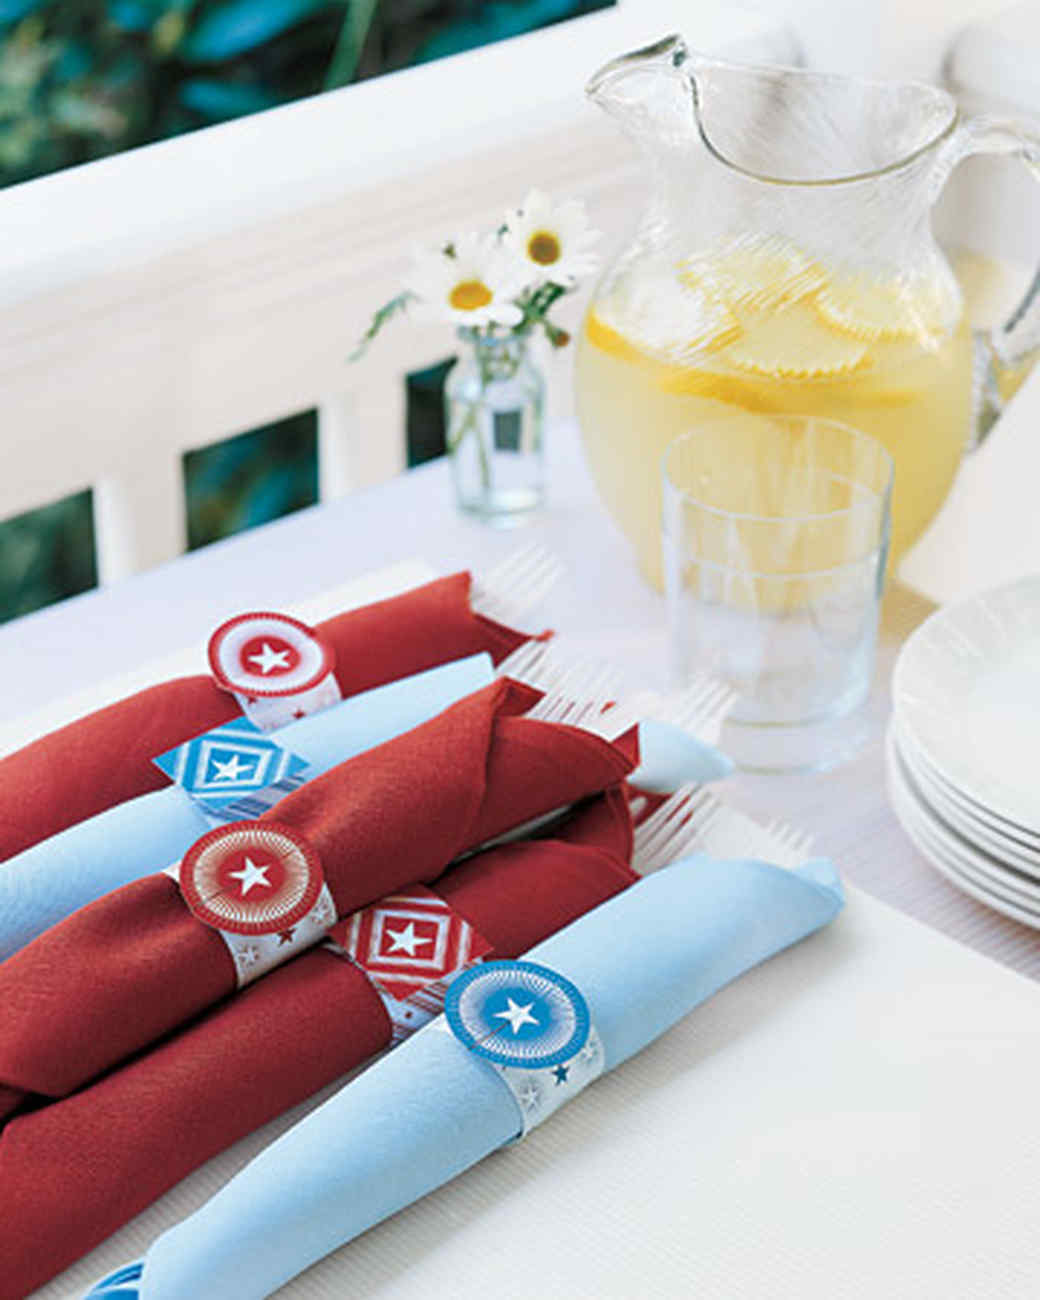 msl_july05_napkinrings.jpg